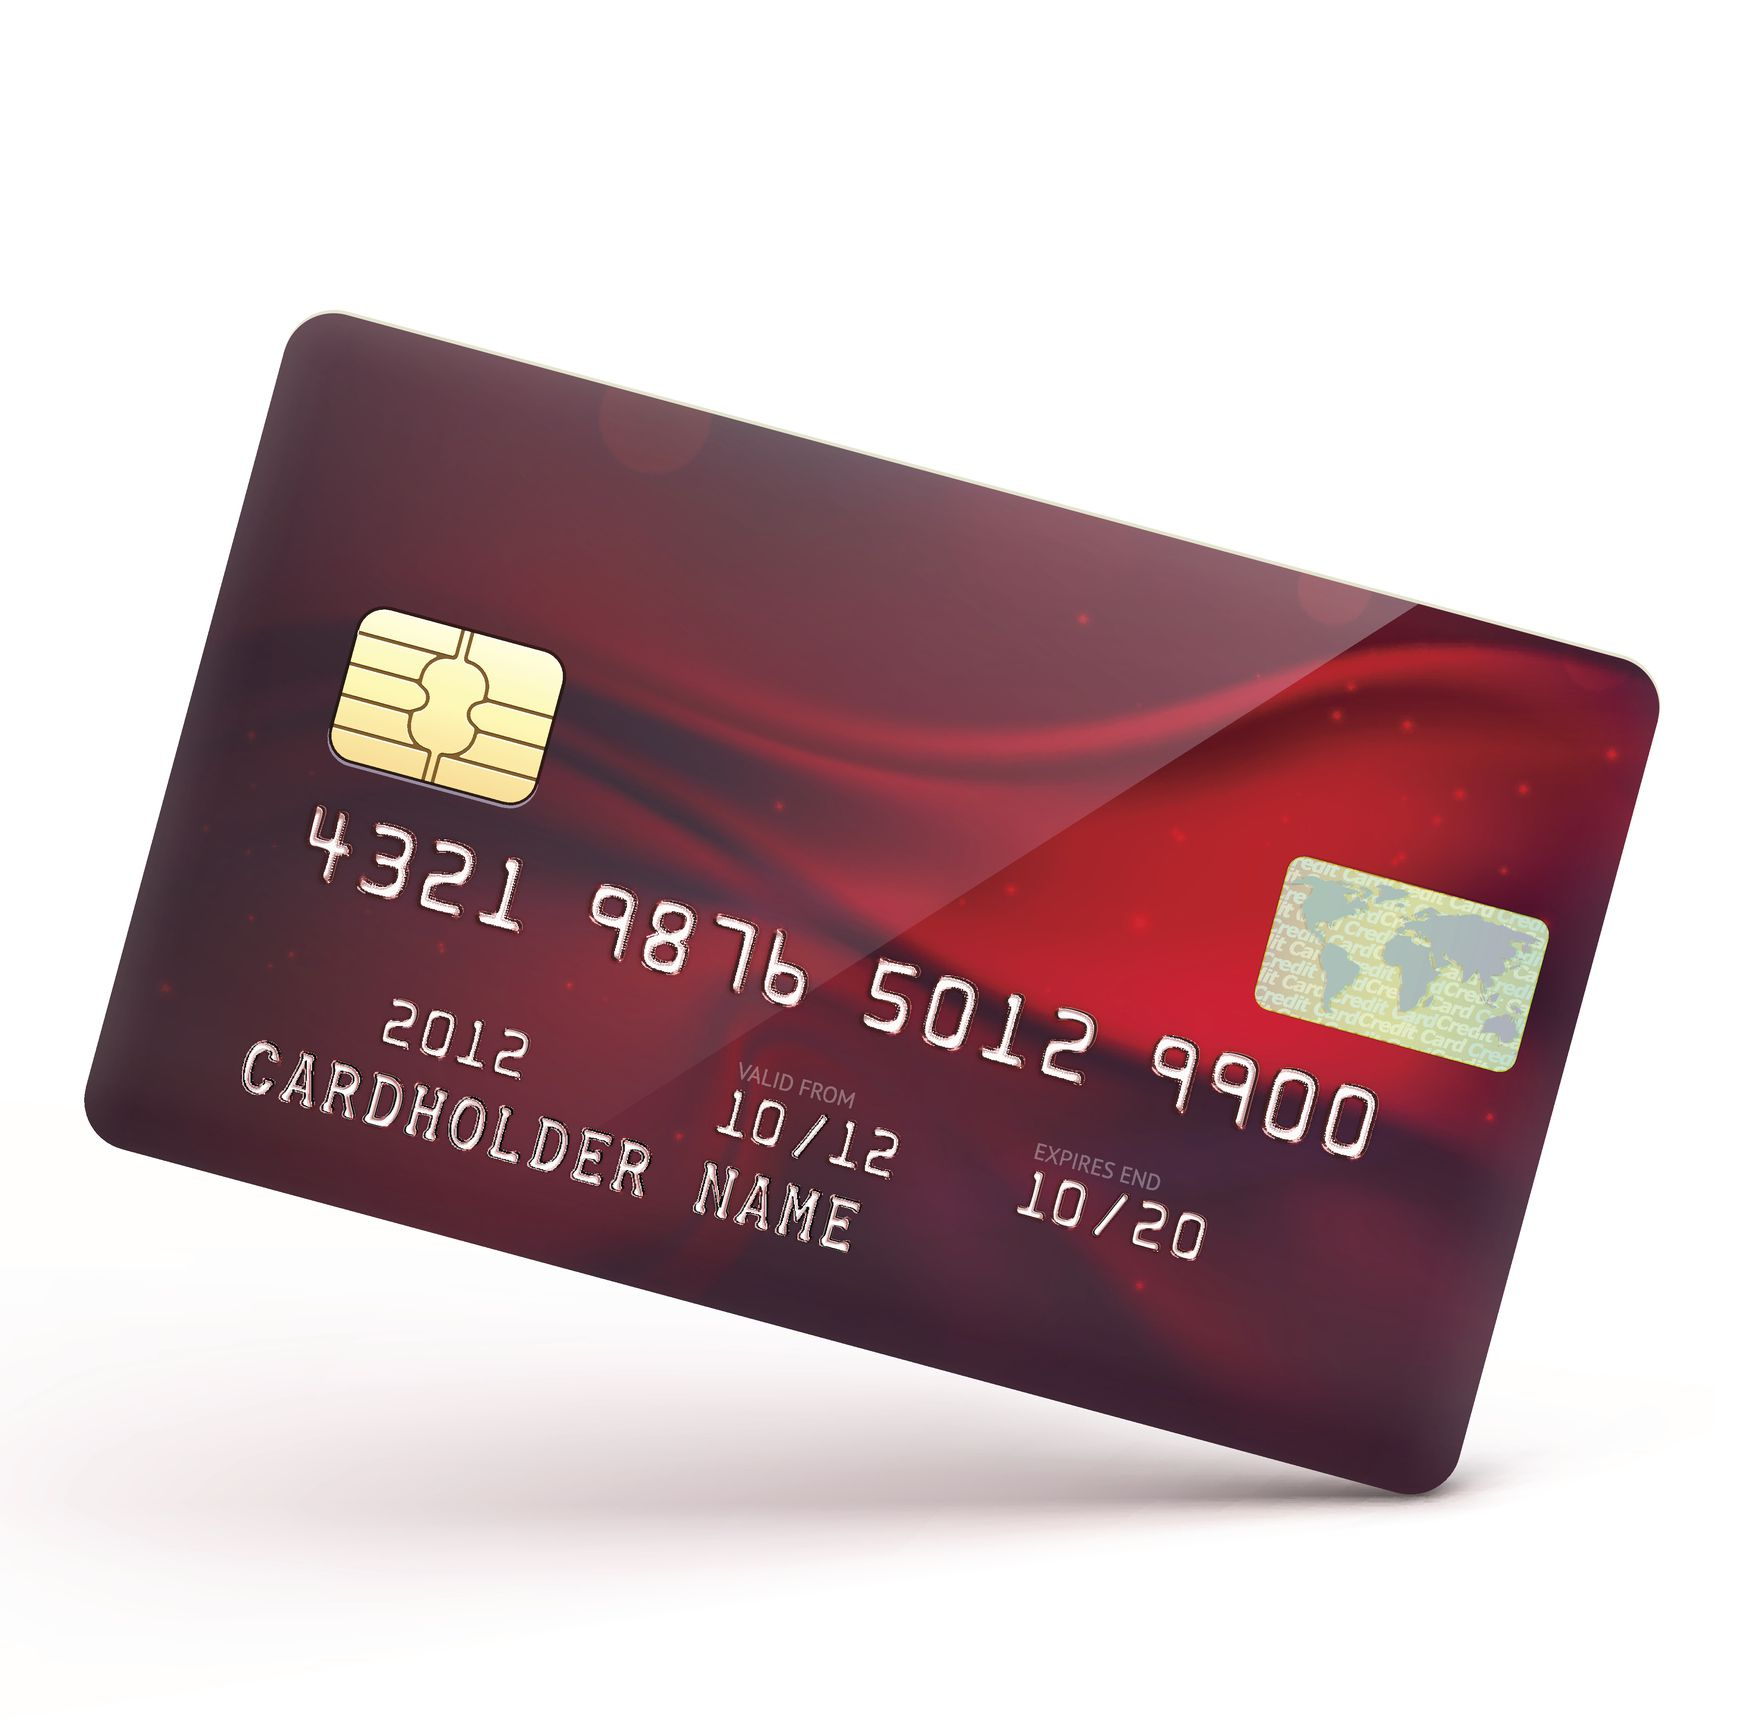 7 Best 0% Credit Cards Of 2019